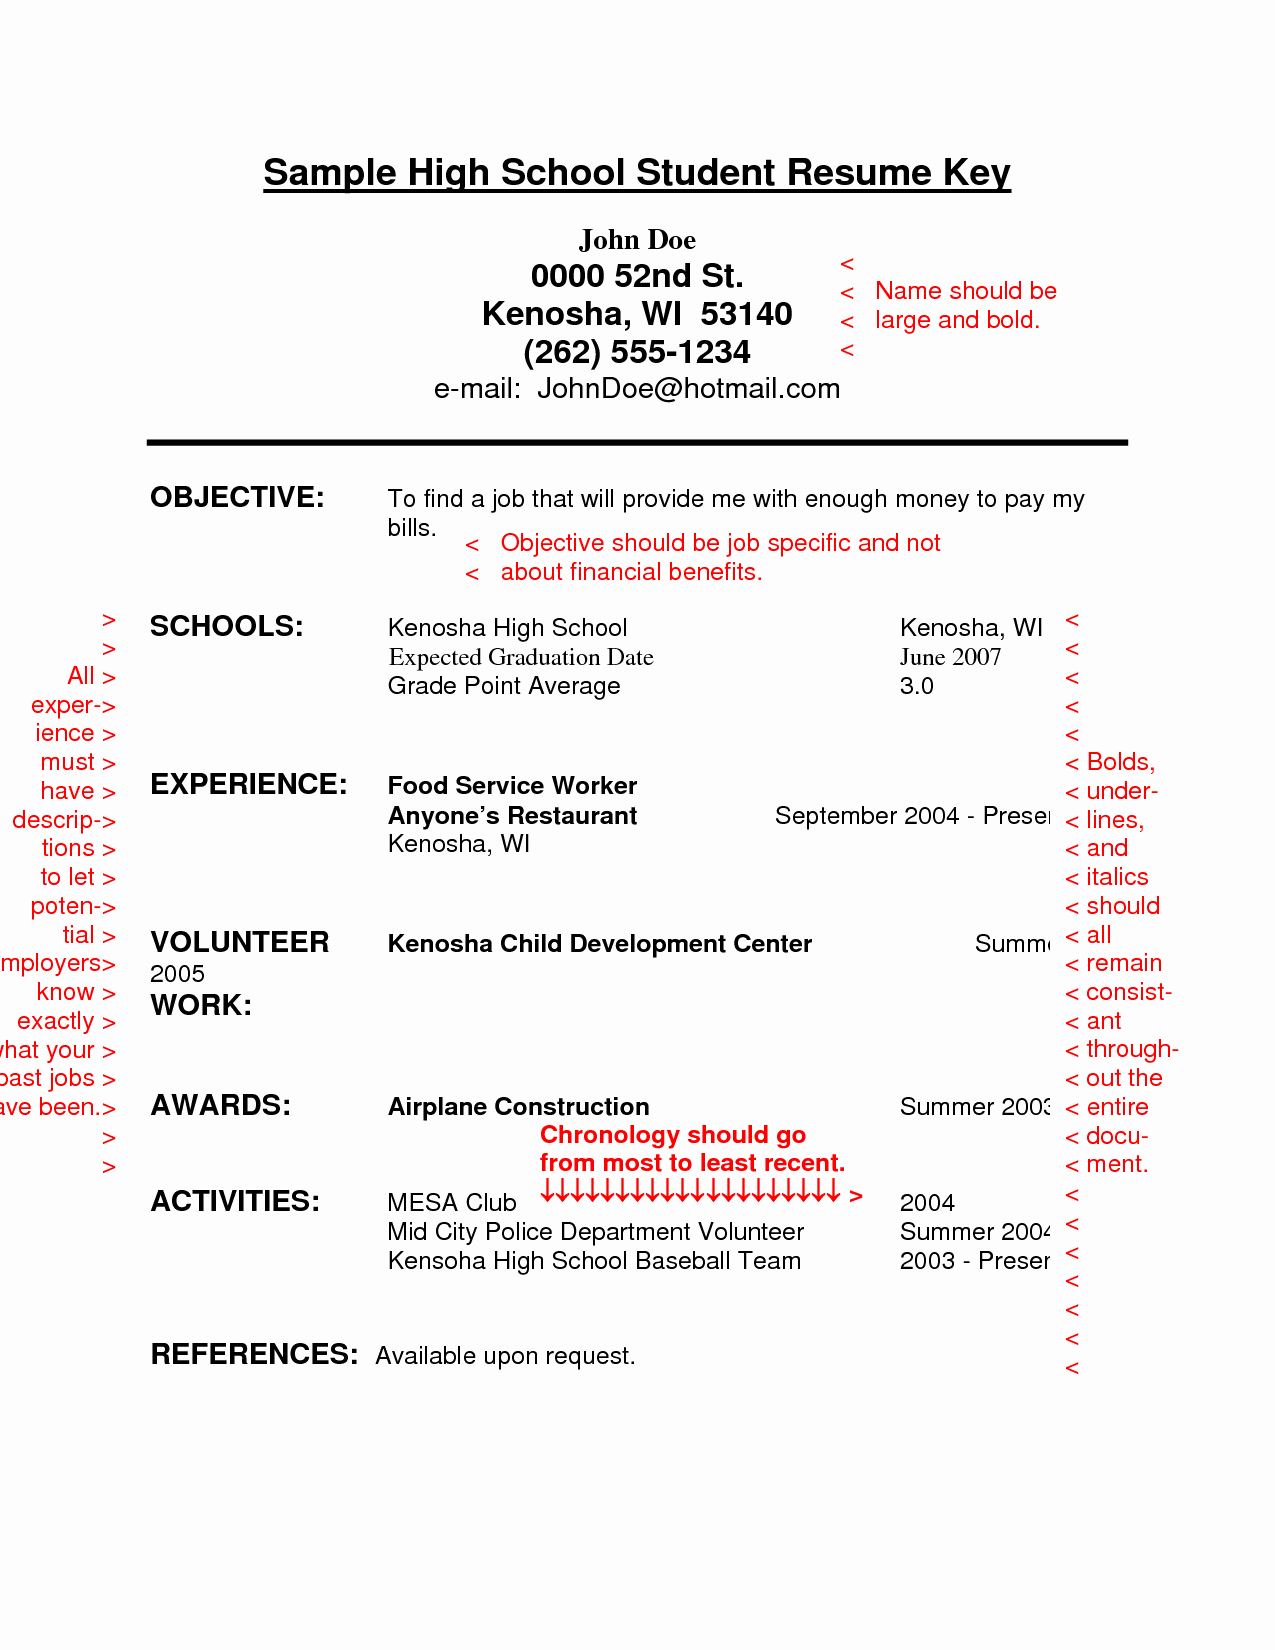 Resume High School Student Fresh Resume Sample for High School Students with No Experience